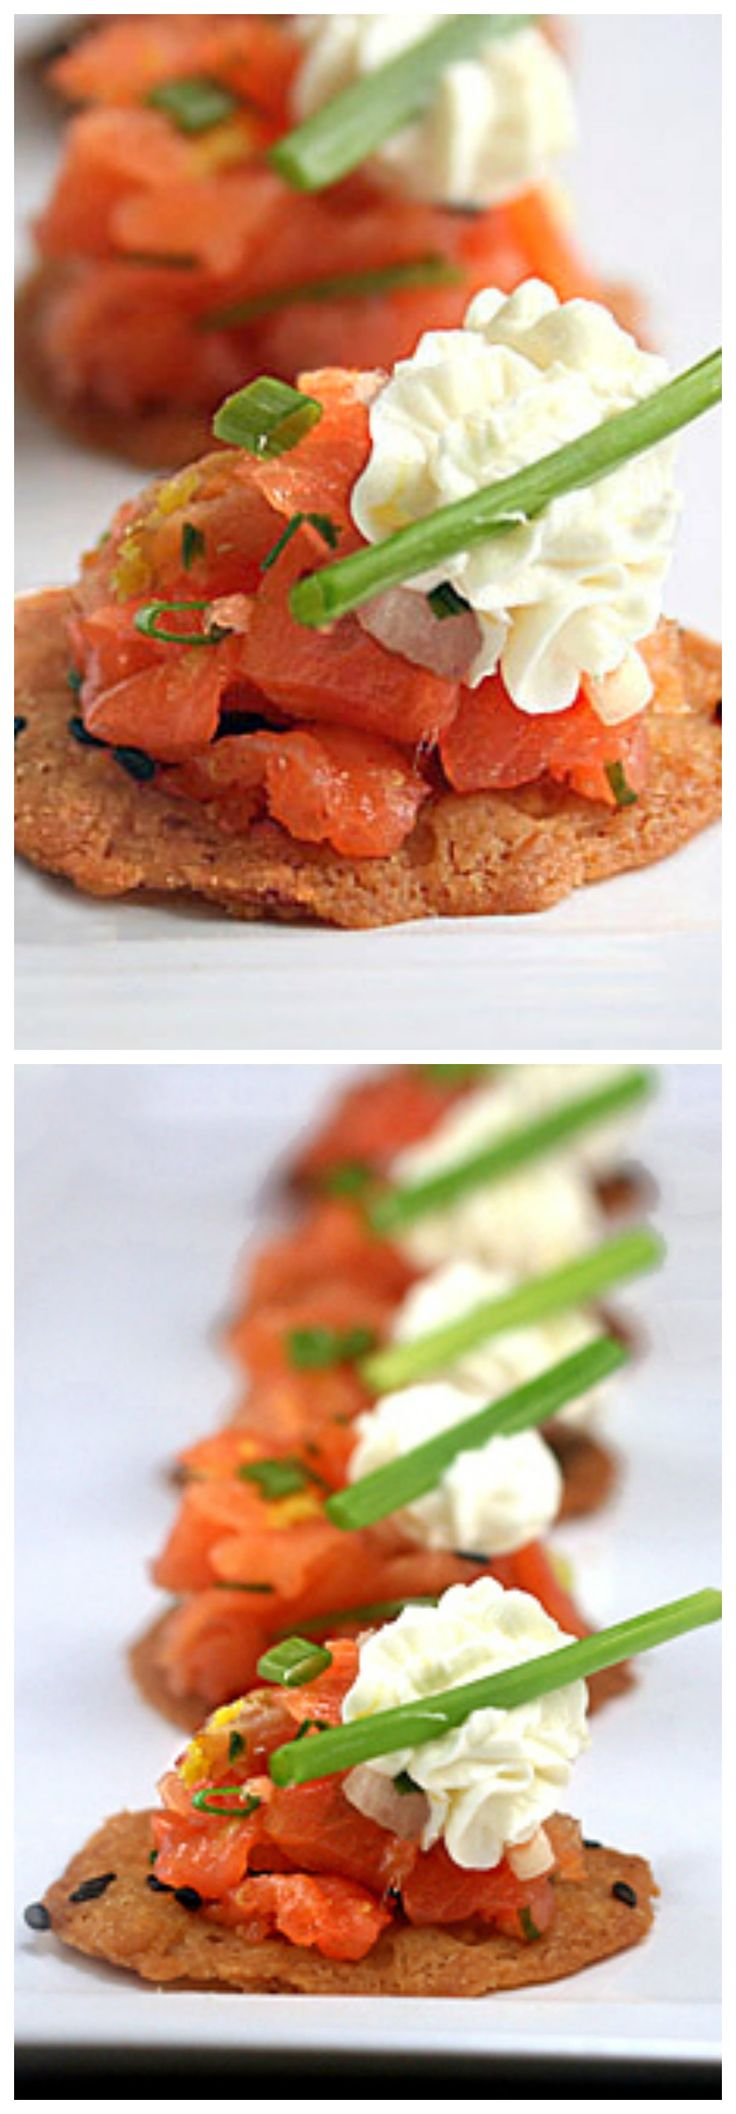 25 best easy hors d 39 oeuvres ideas on pinterest hors d for Hor d oeuvres recipes